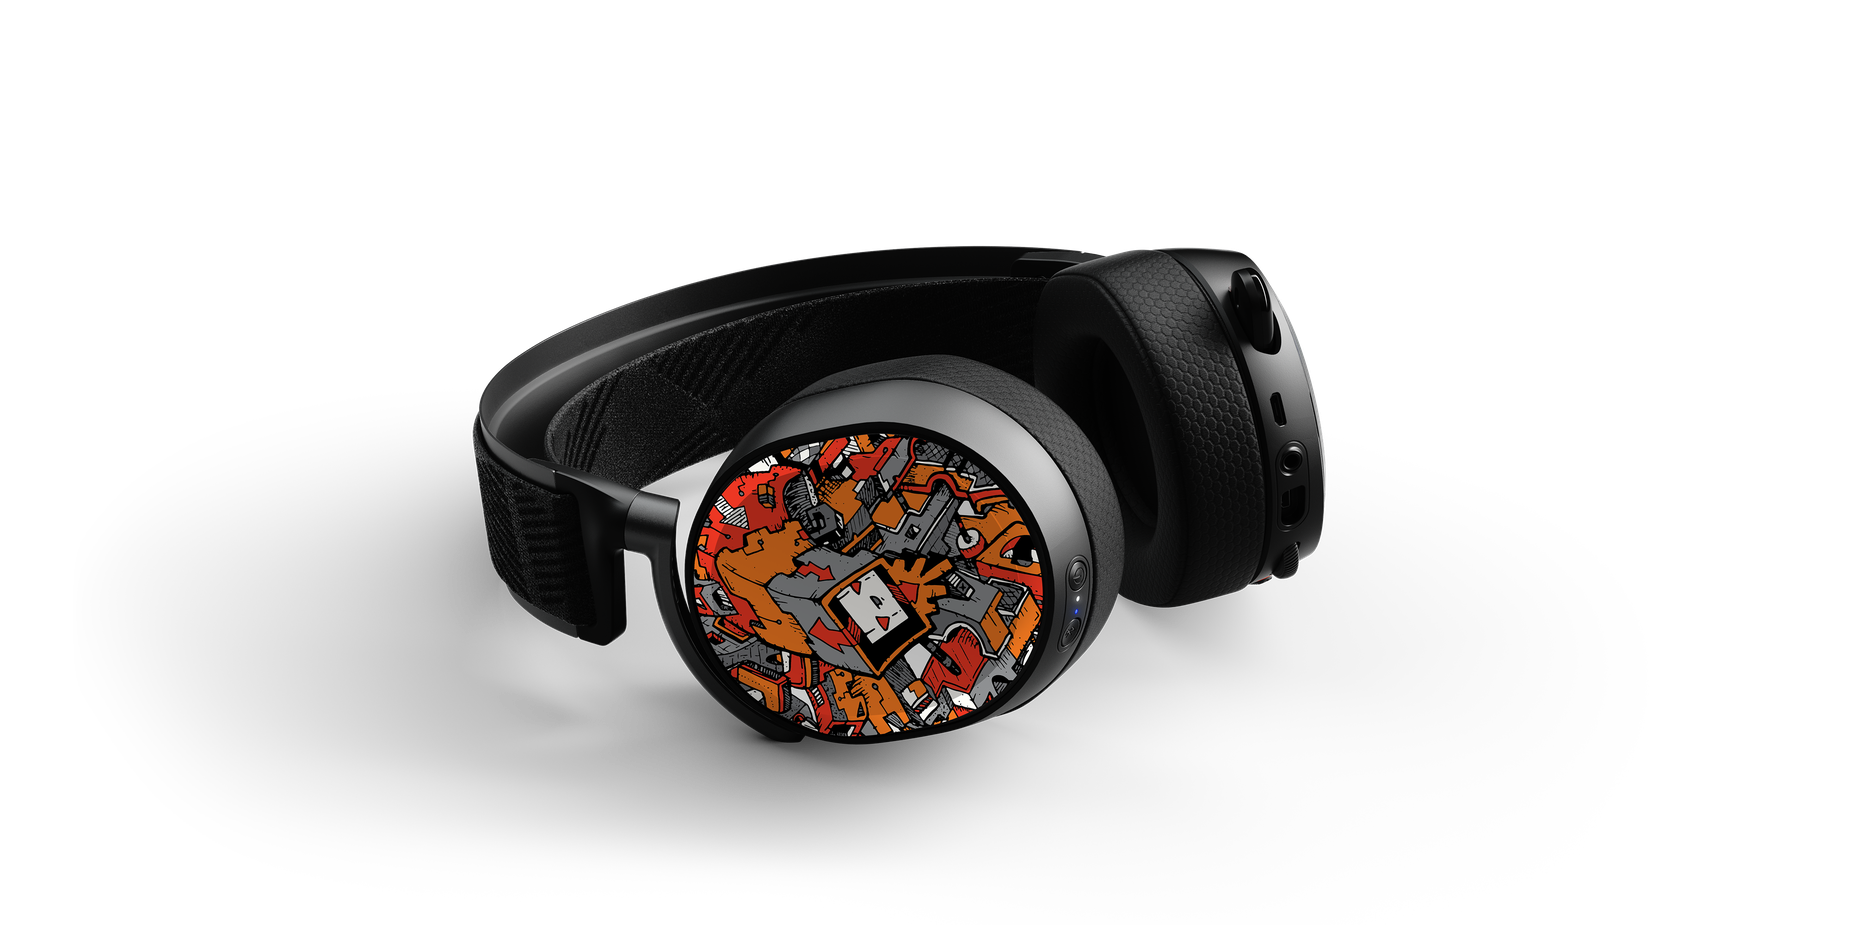 Arctis Pro speaker plates designed by Artist Dune Haggar on a headset laying flat